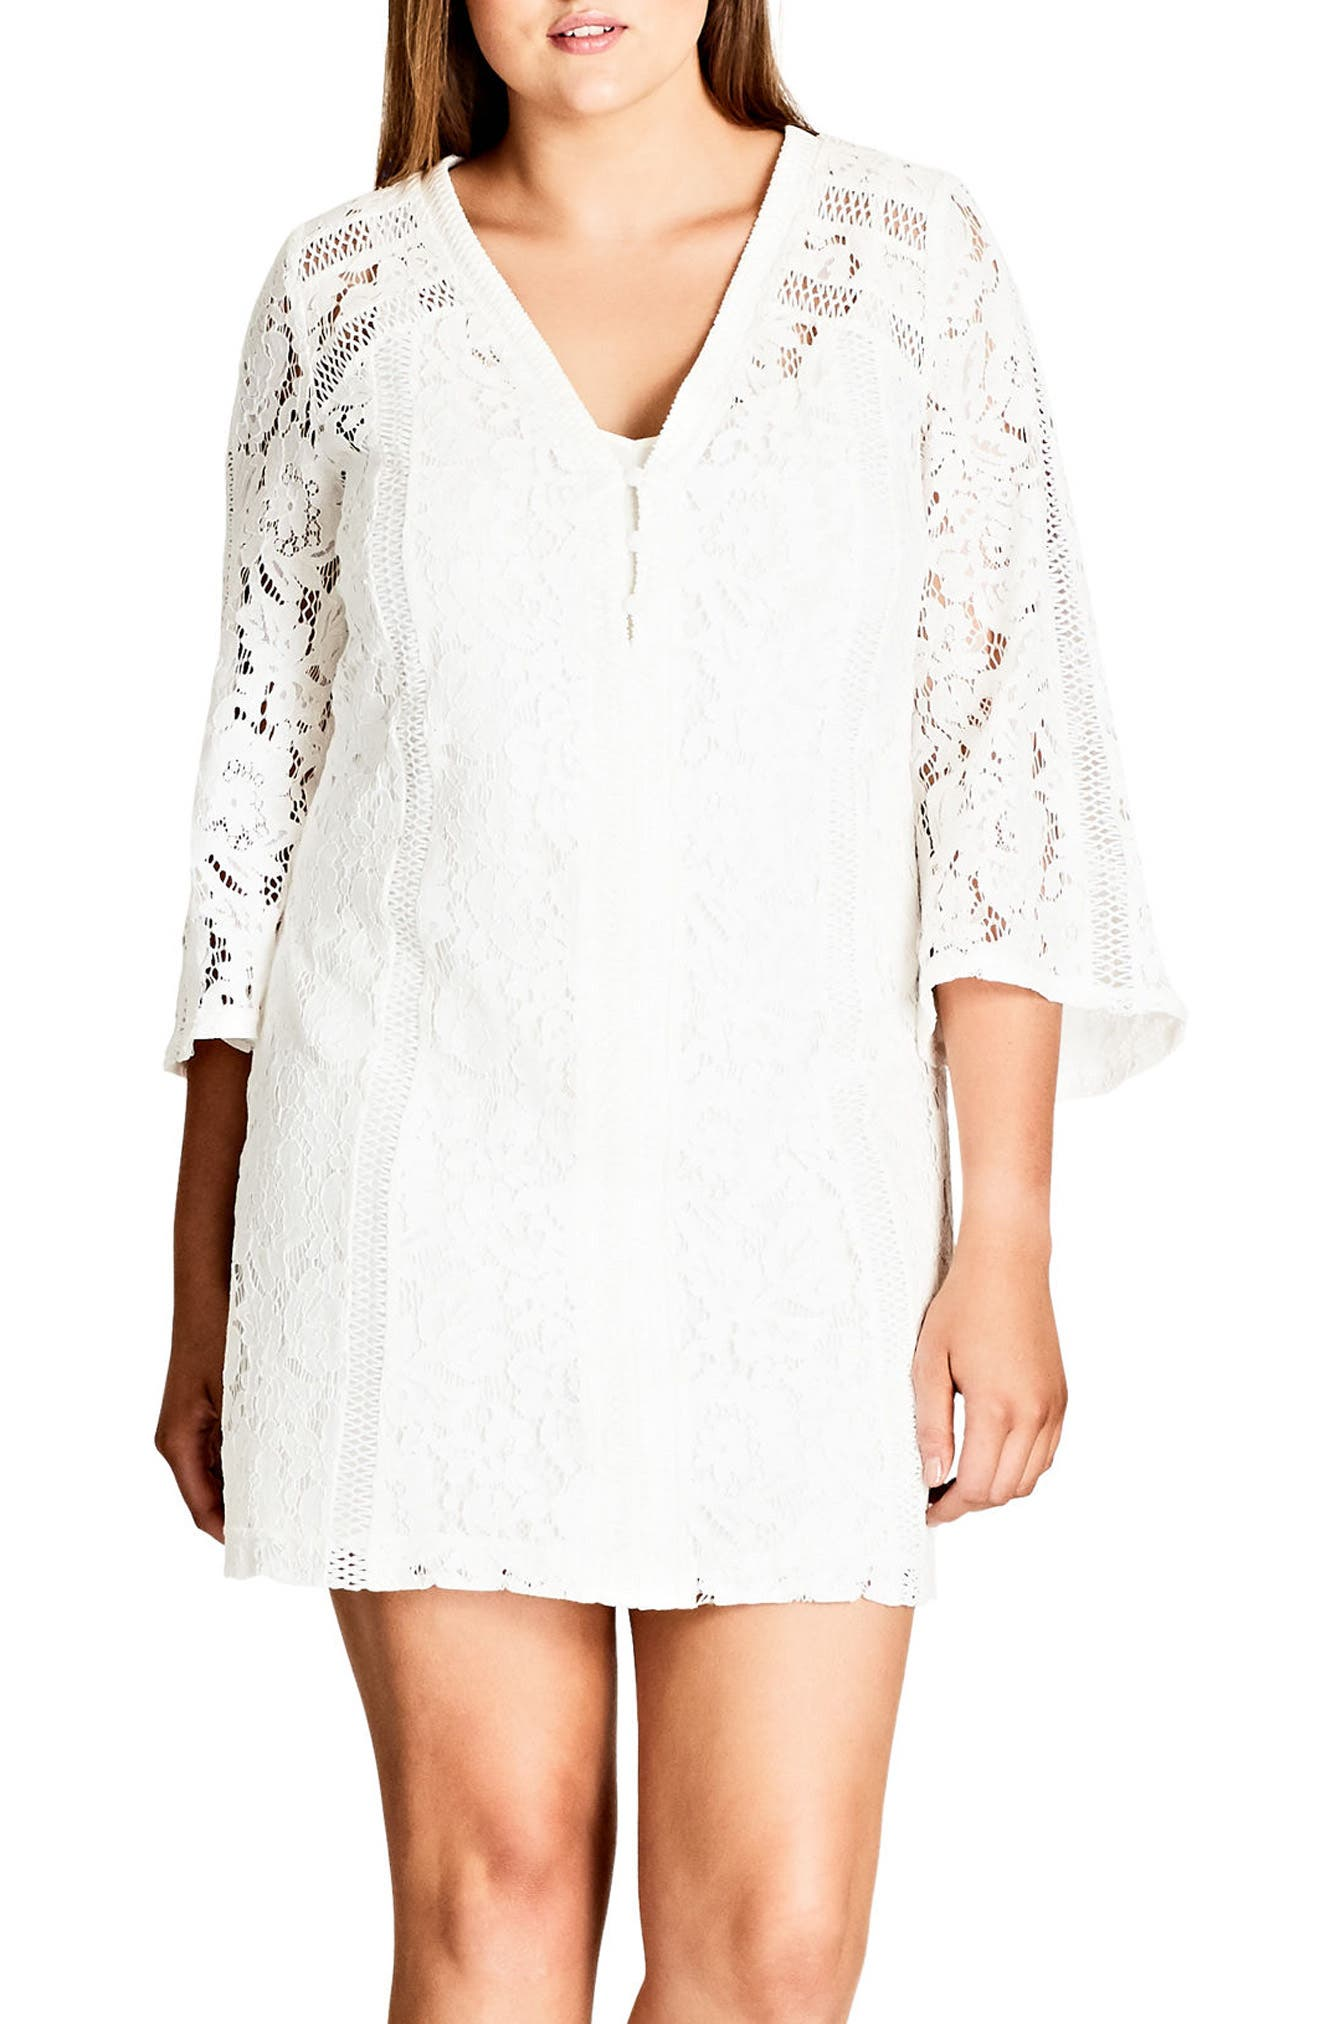 City Chic Innocent Lace Shift Dress (Plus Size)